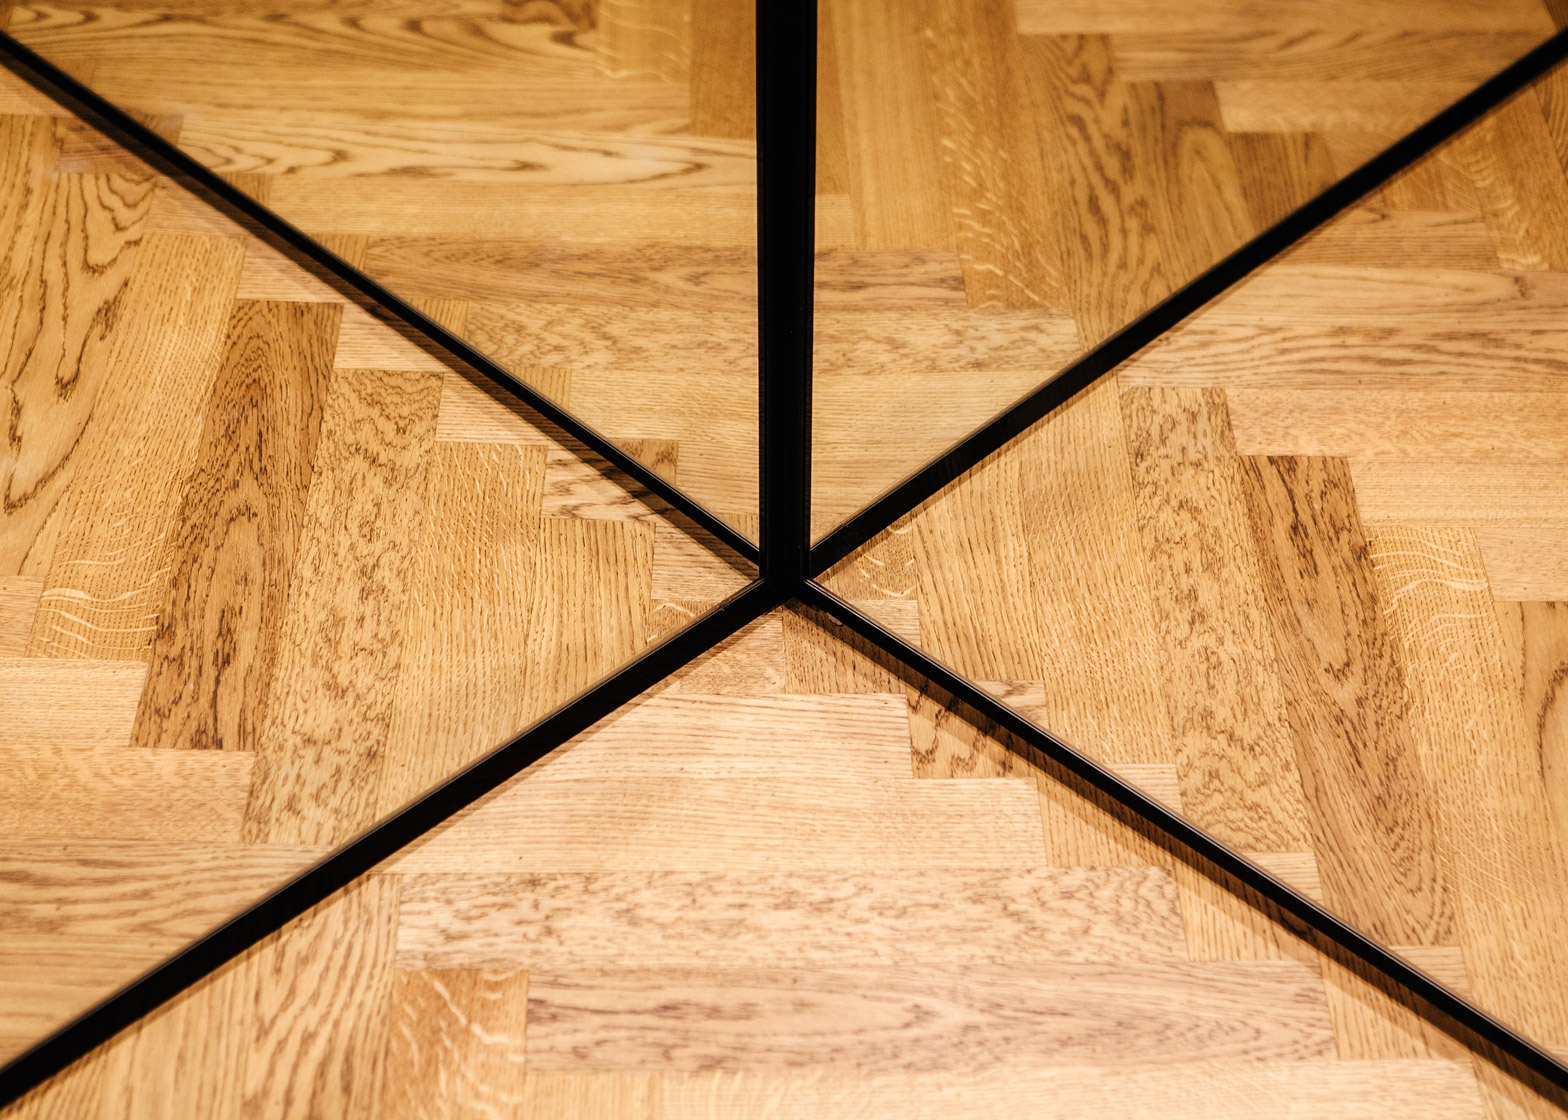 The Fitting Room by Olaf Hussein